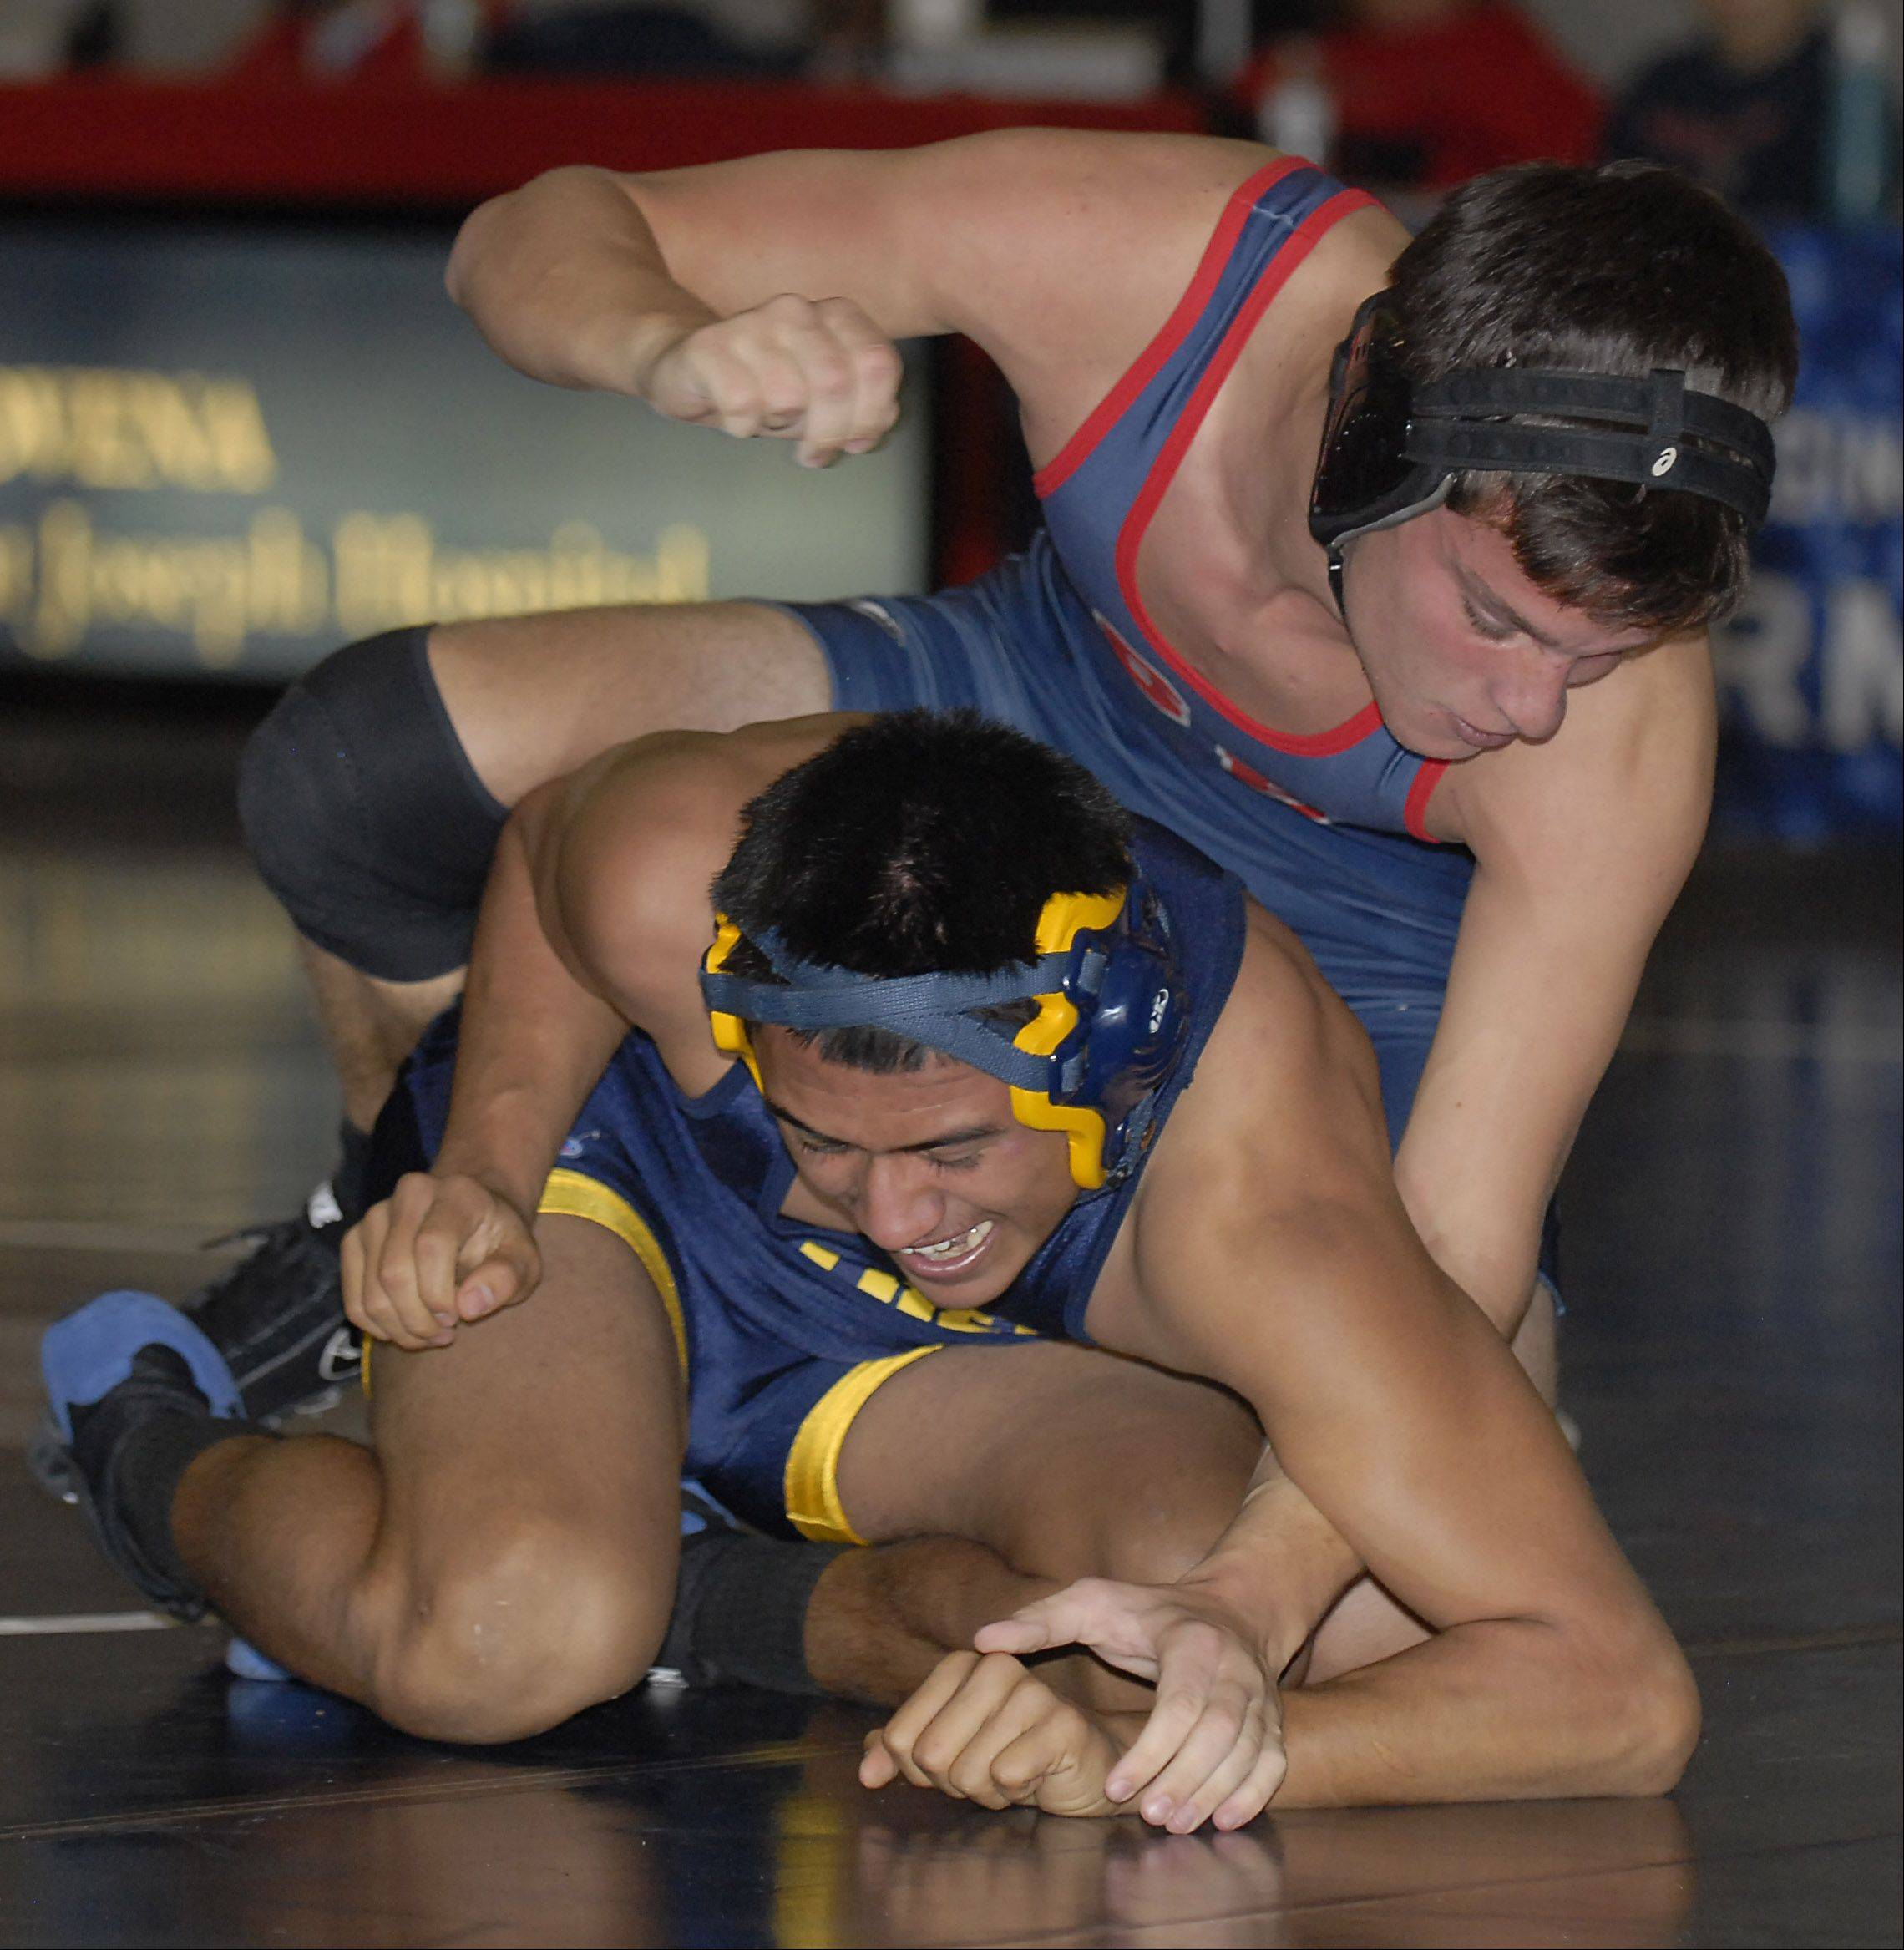 South Elgin's AJ Venturella reaches to wrap his hands around the wrists of Round Lake's Juan Mena in the 152-pound match on Saturday, December 1.